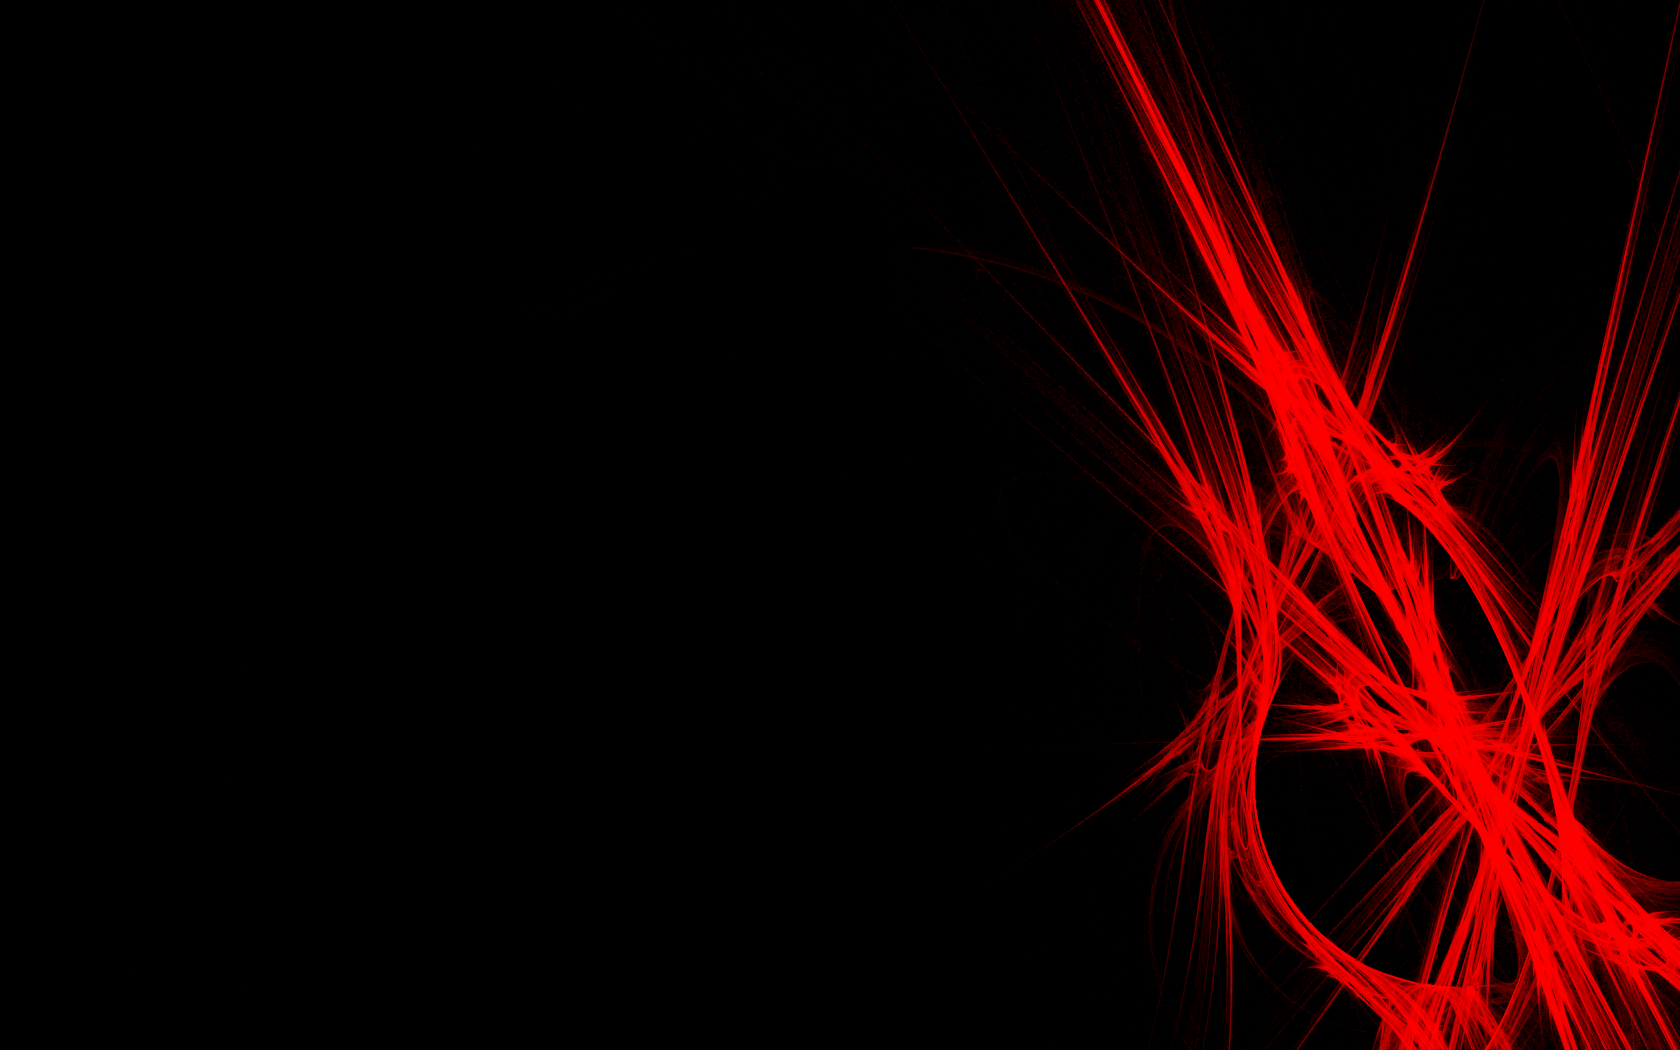 Red-background-black-white-by-xfecal-facex-jpg